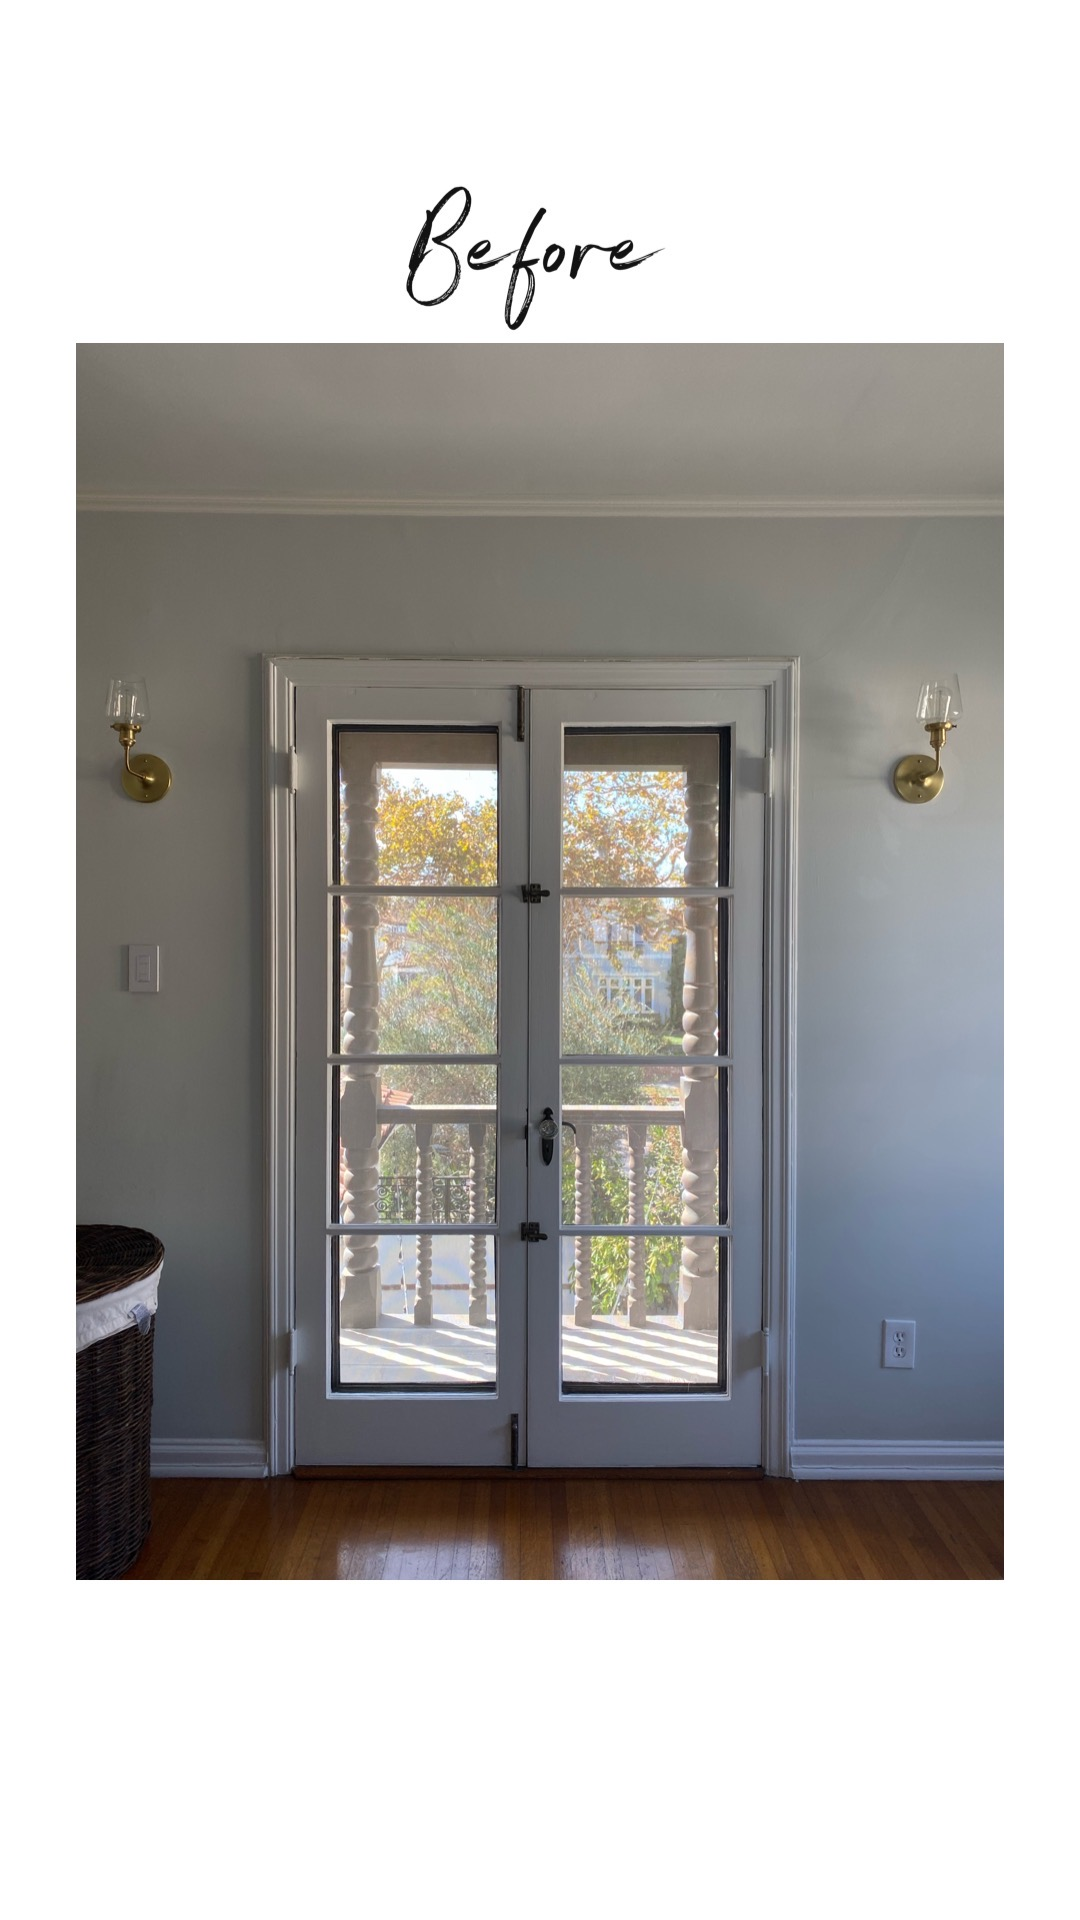 A bedroom renovation that starts with bare French doors that lead outside to balcony